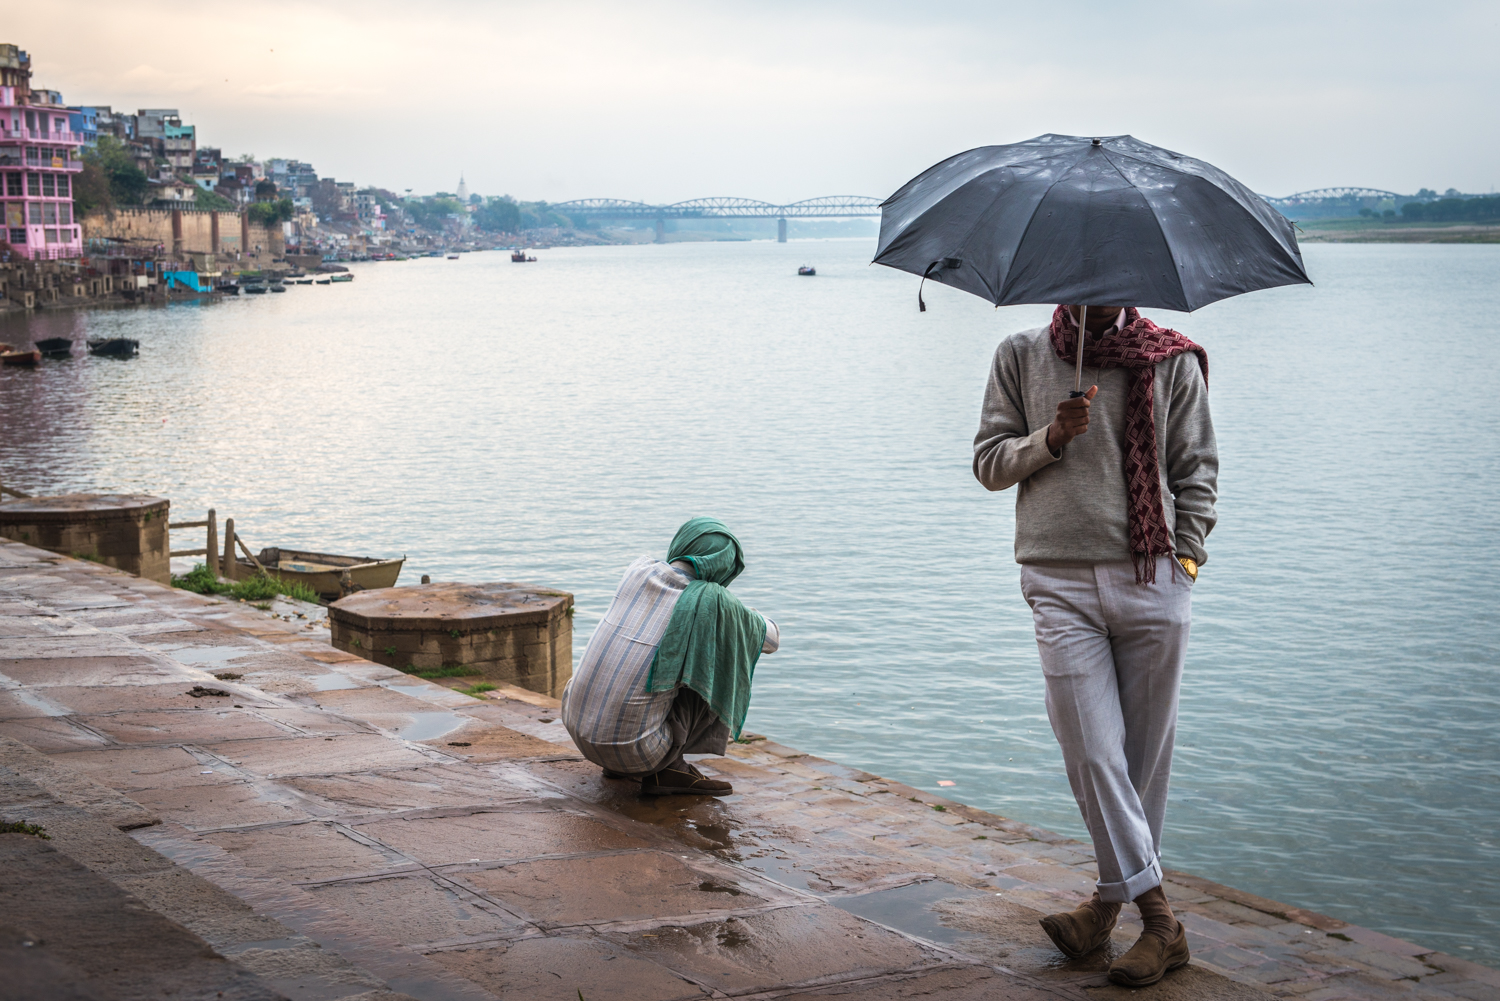 A man unknowingly poses near the banks of the Ganges river - Varanasi, India.